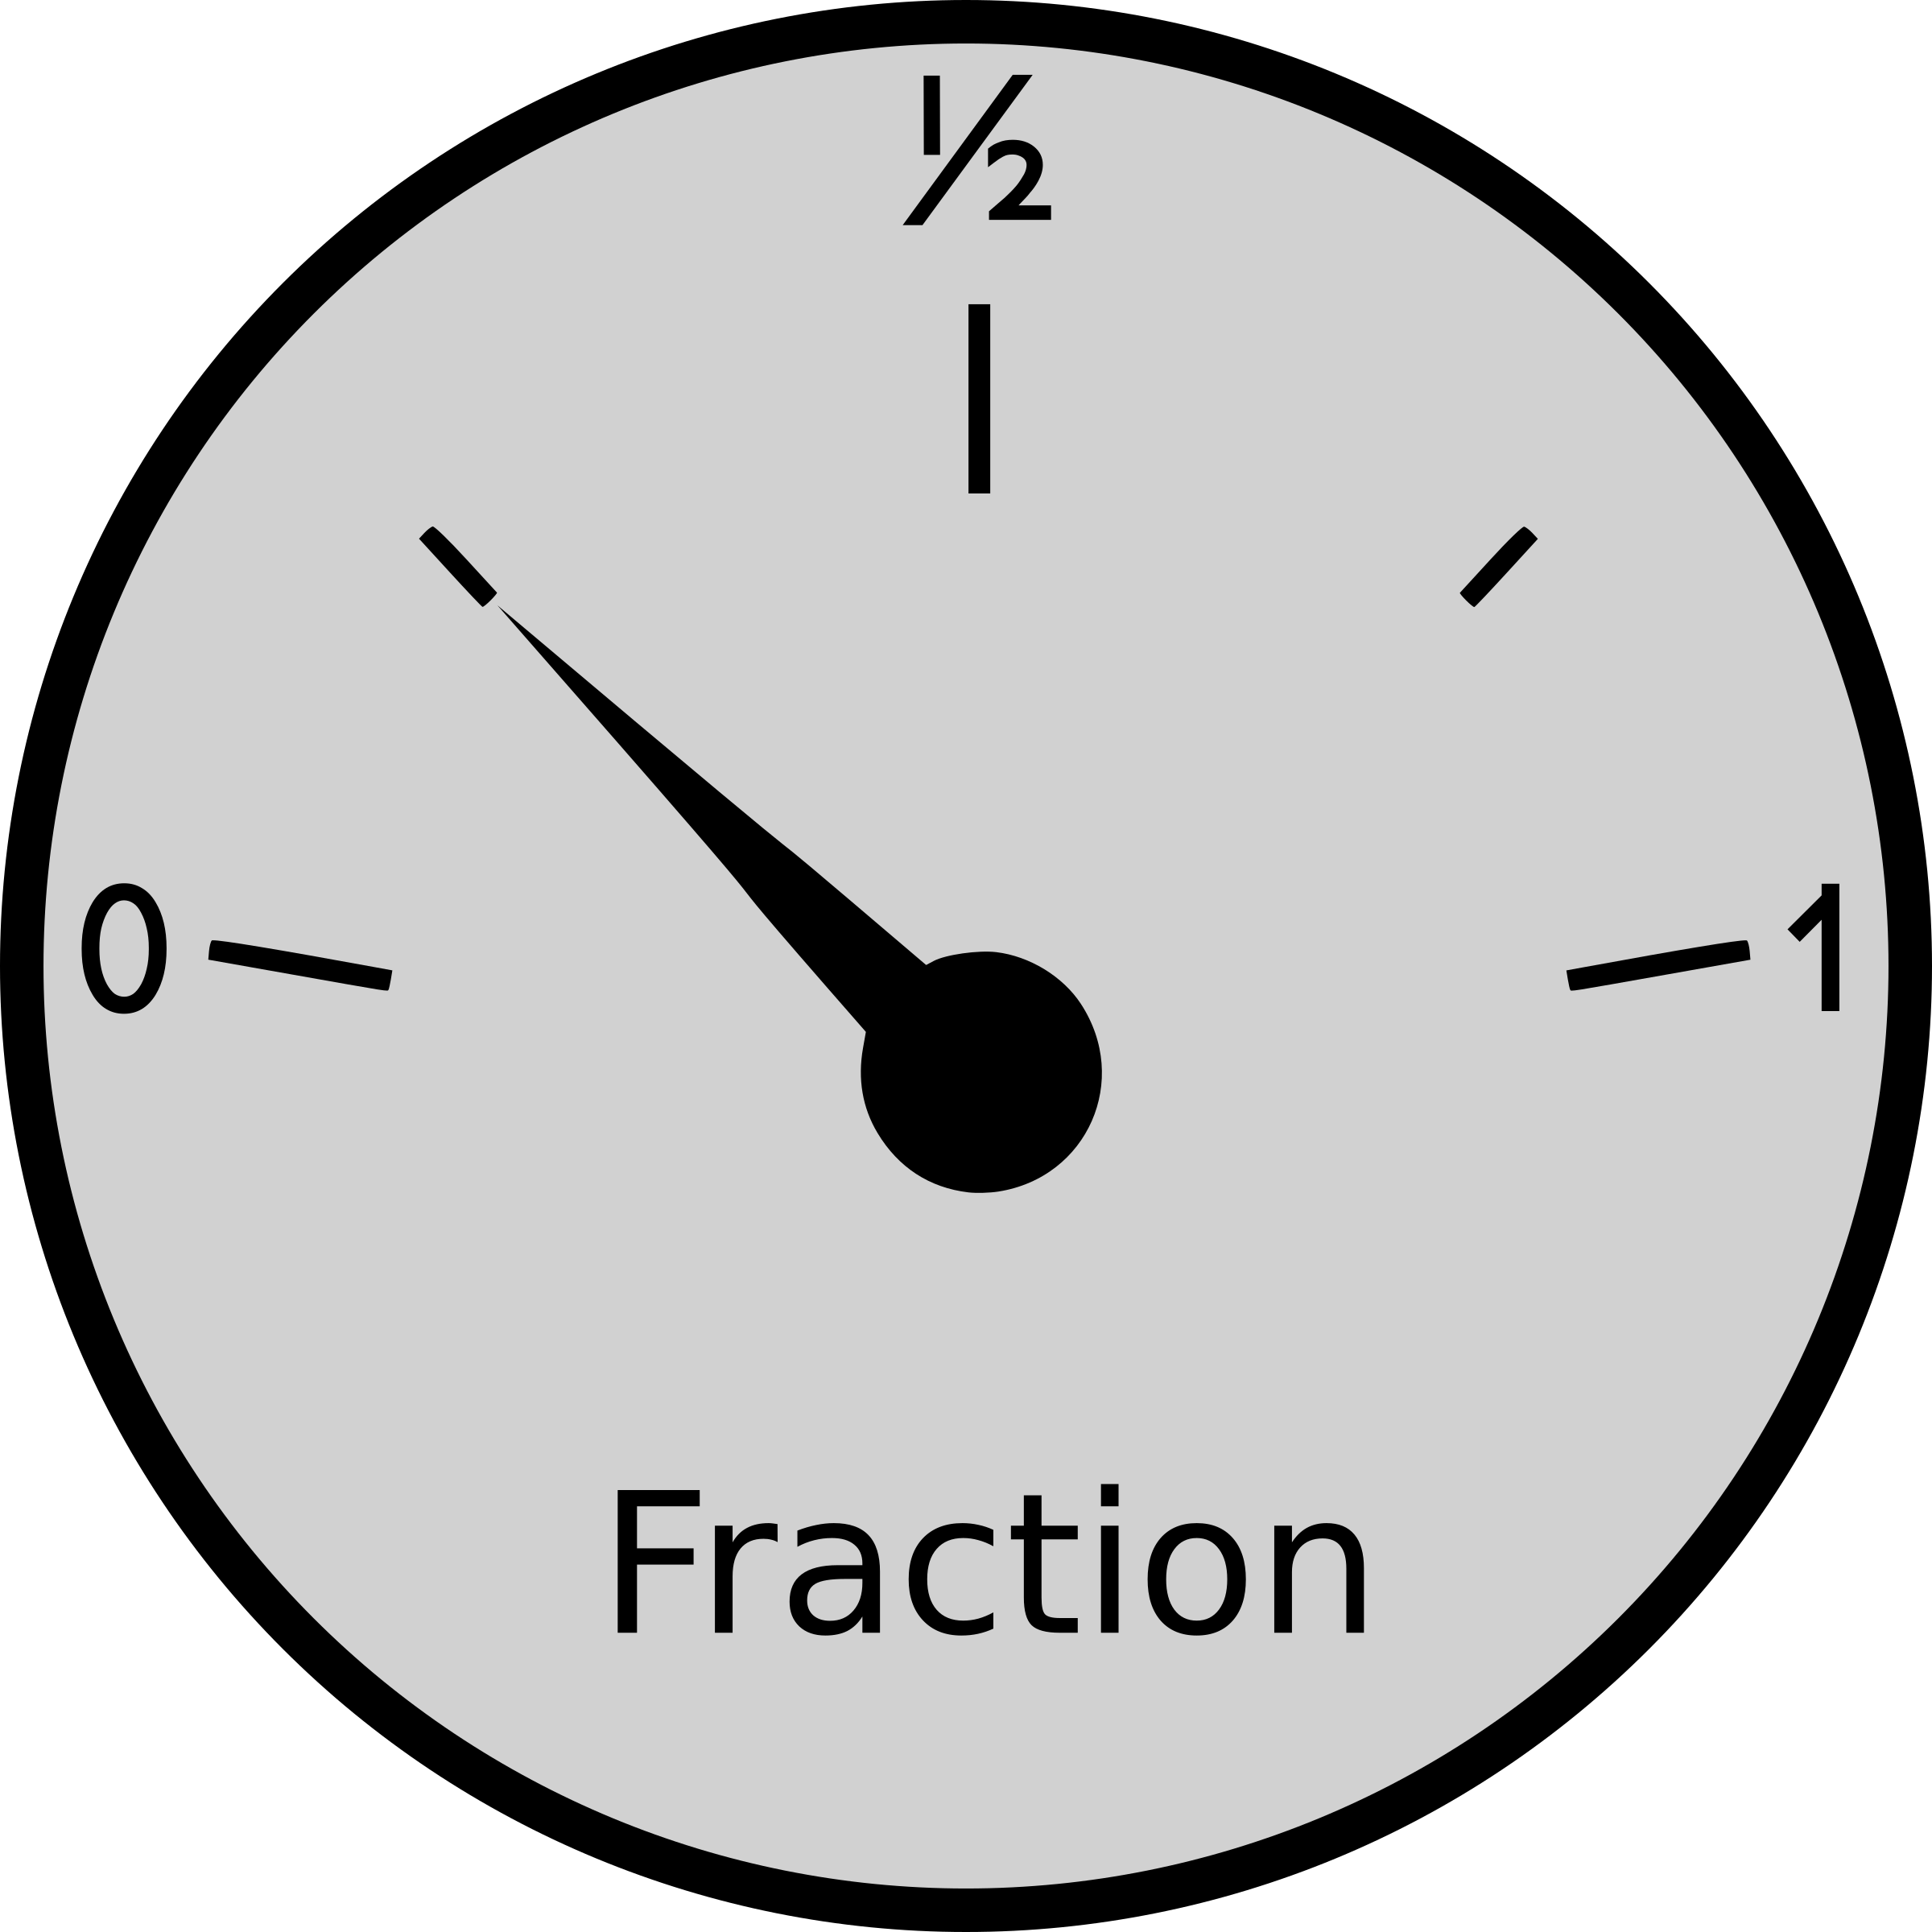 Fraction gauge by waielbi